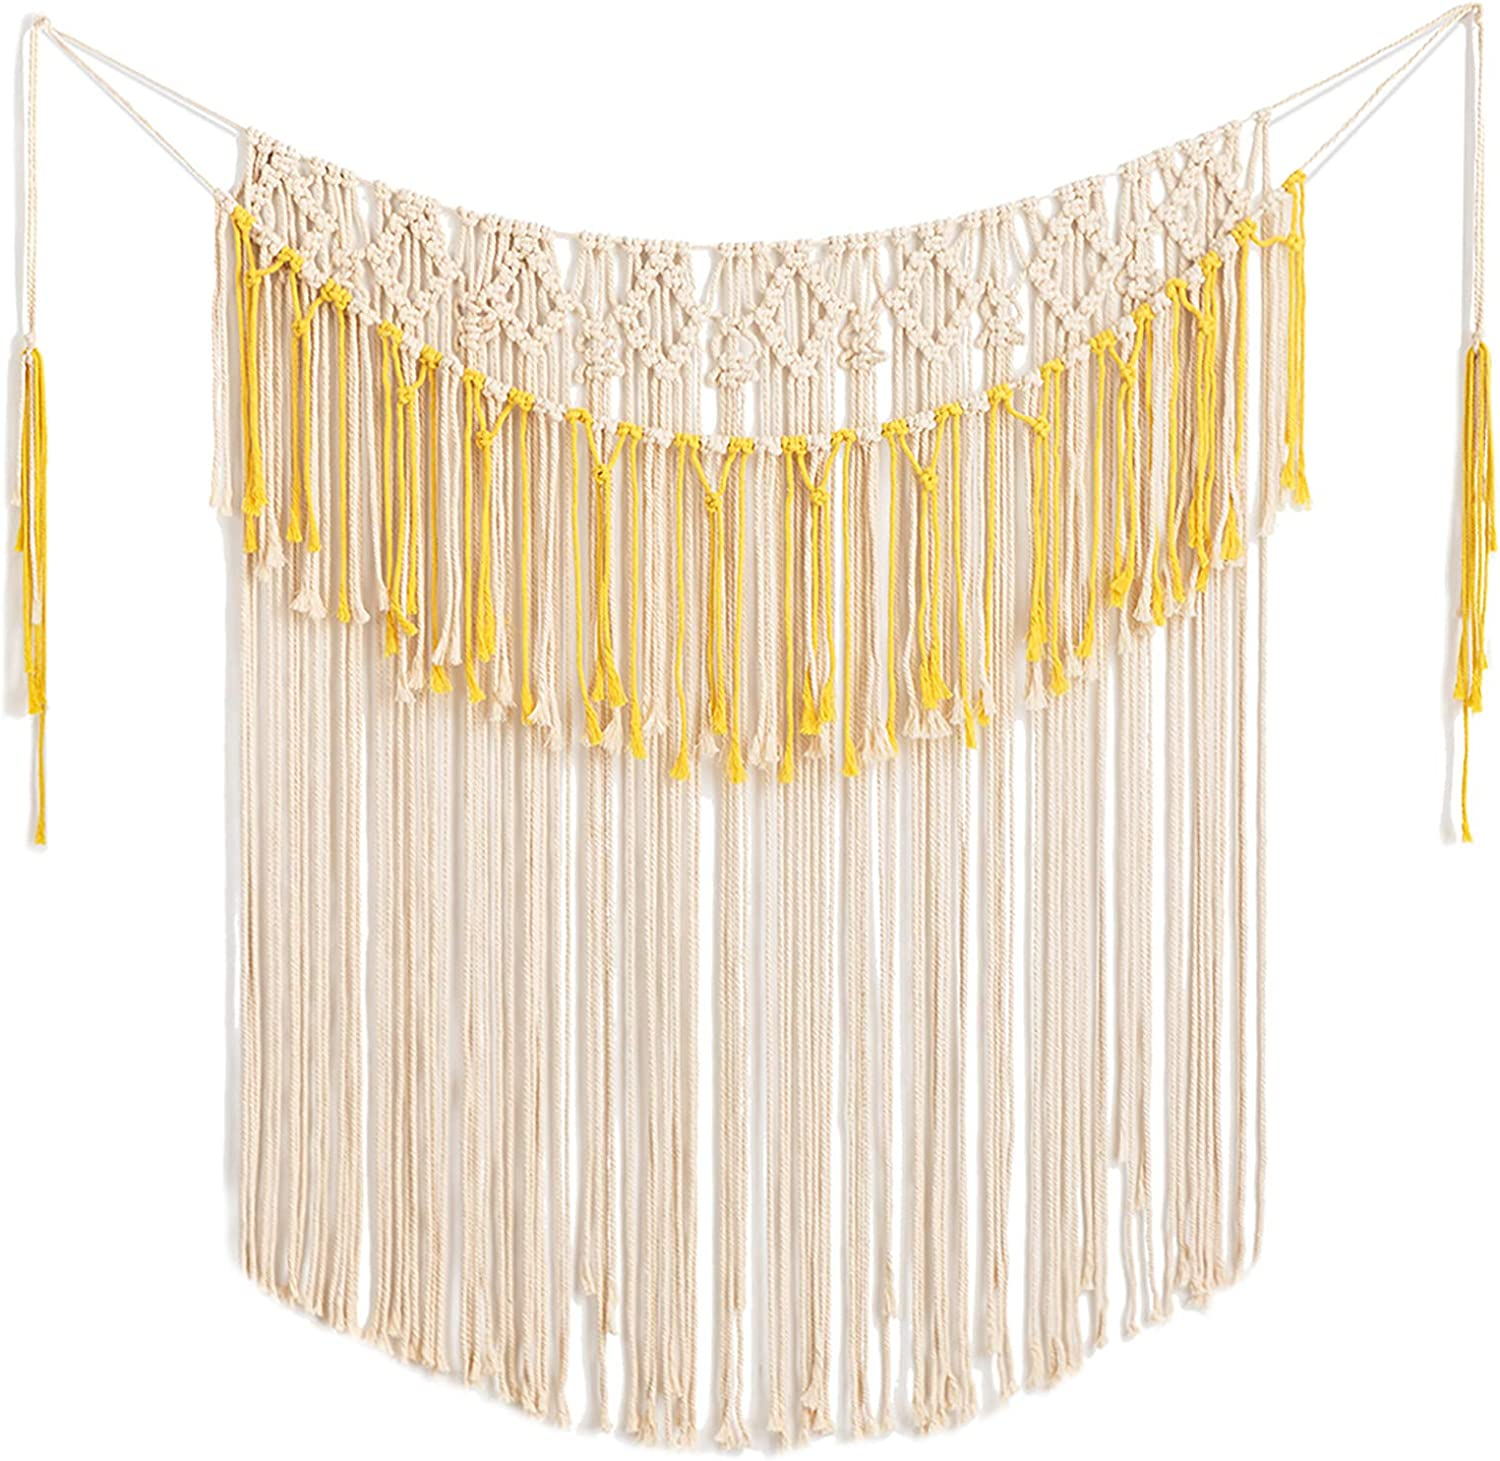 """ARTALL Wall Hanging Macrame Curtain Fringe Banner Bohemian Wall Decor Woven Tapestry Home Decoration for Wedding Apartment Yellow 43"""" w x 51"""" h"""